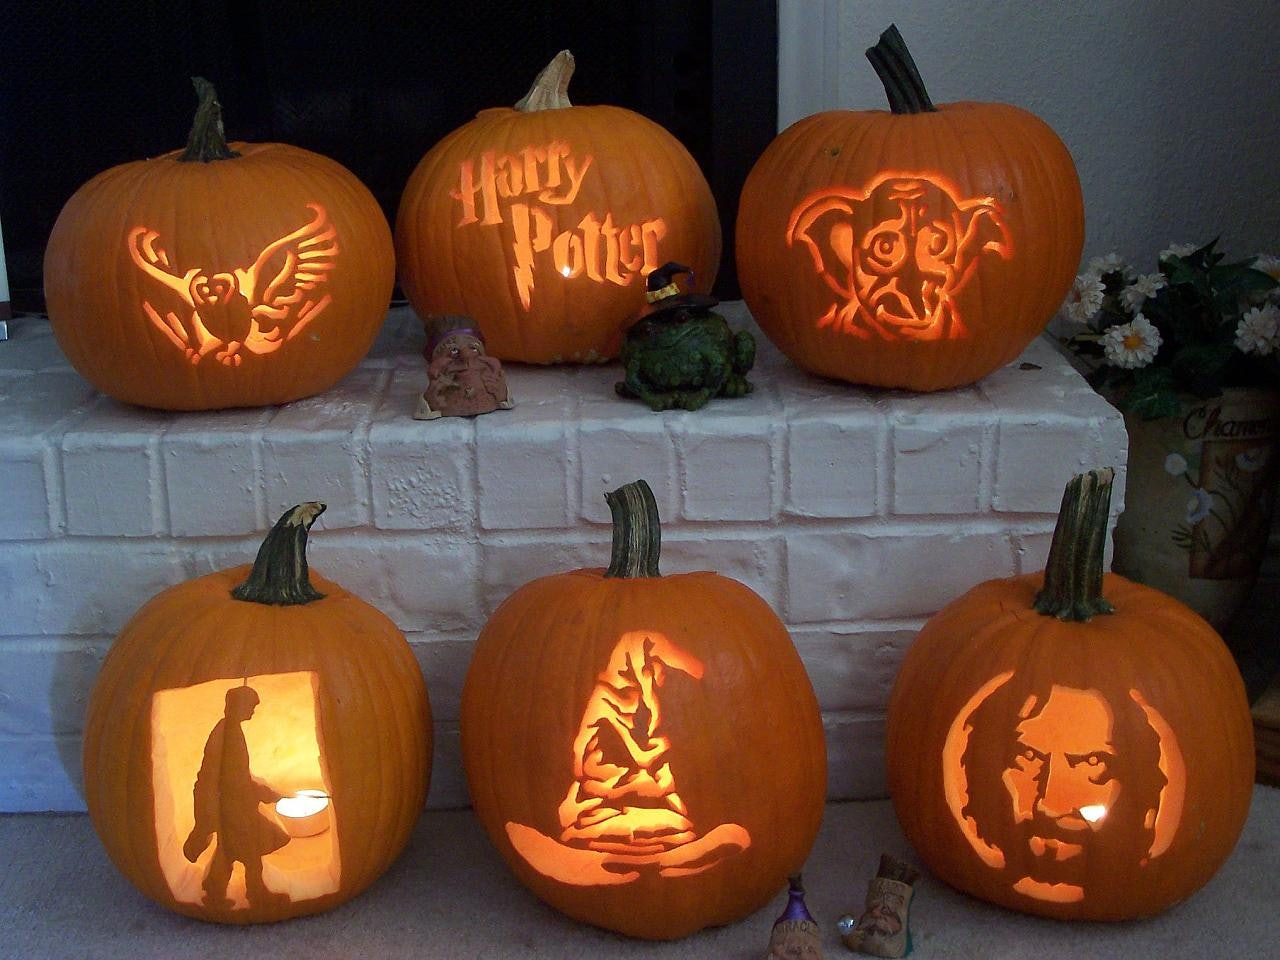 planning a harry potter halloween party, in 10 magical steps